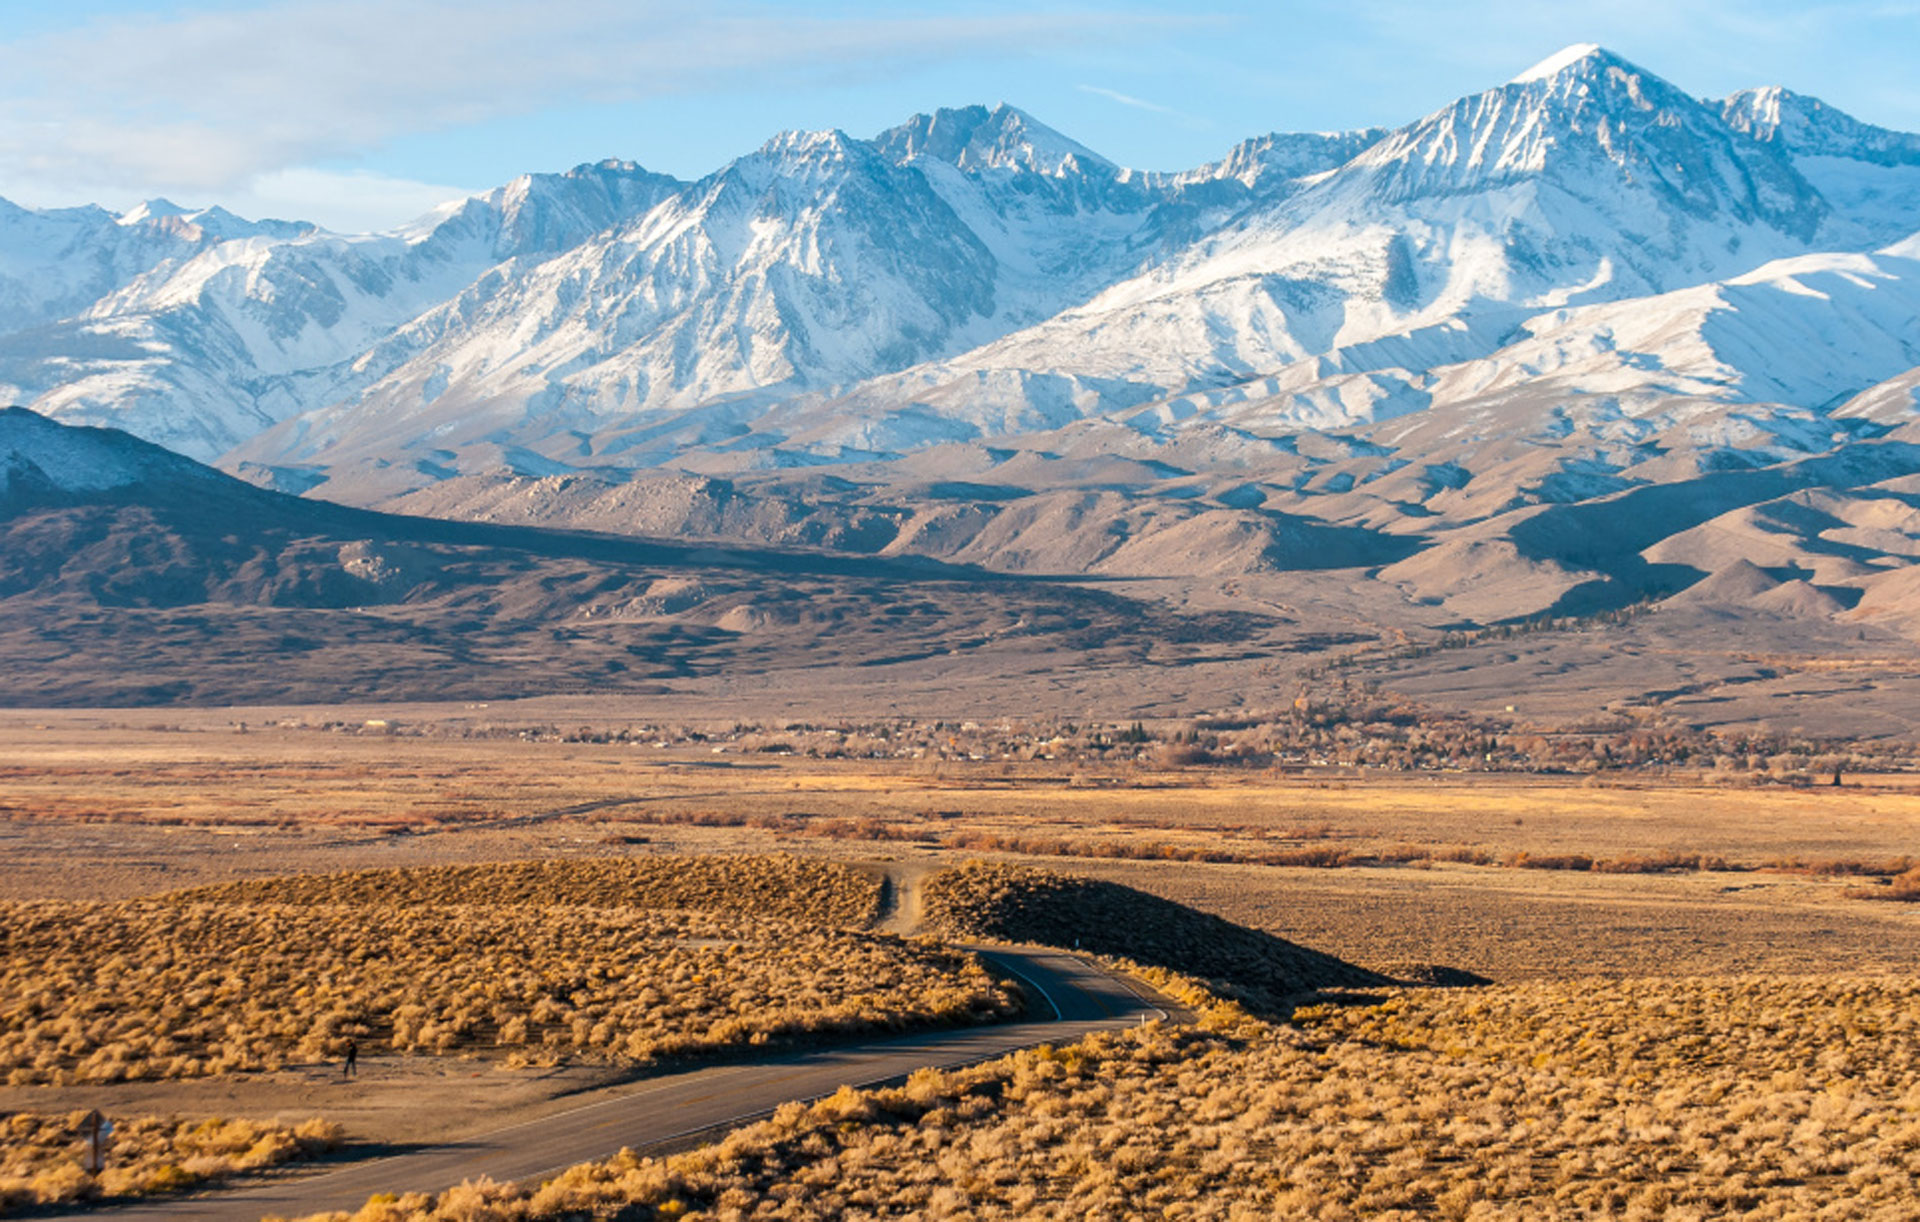 Big Pine, in the Owens Valley south of Bishop. The Sierra Nevada snowpack in a typical year provides almost a third of California's water supply.